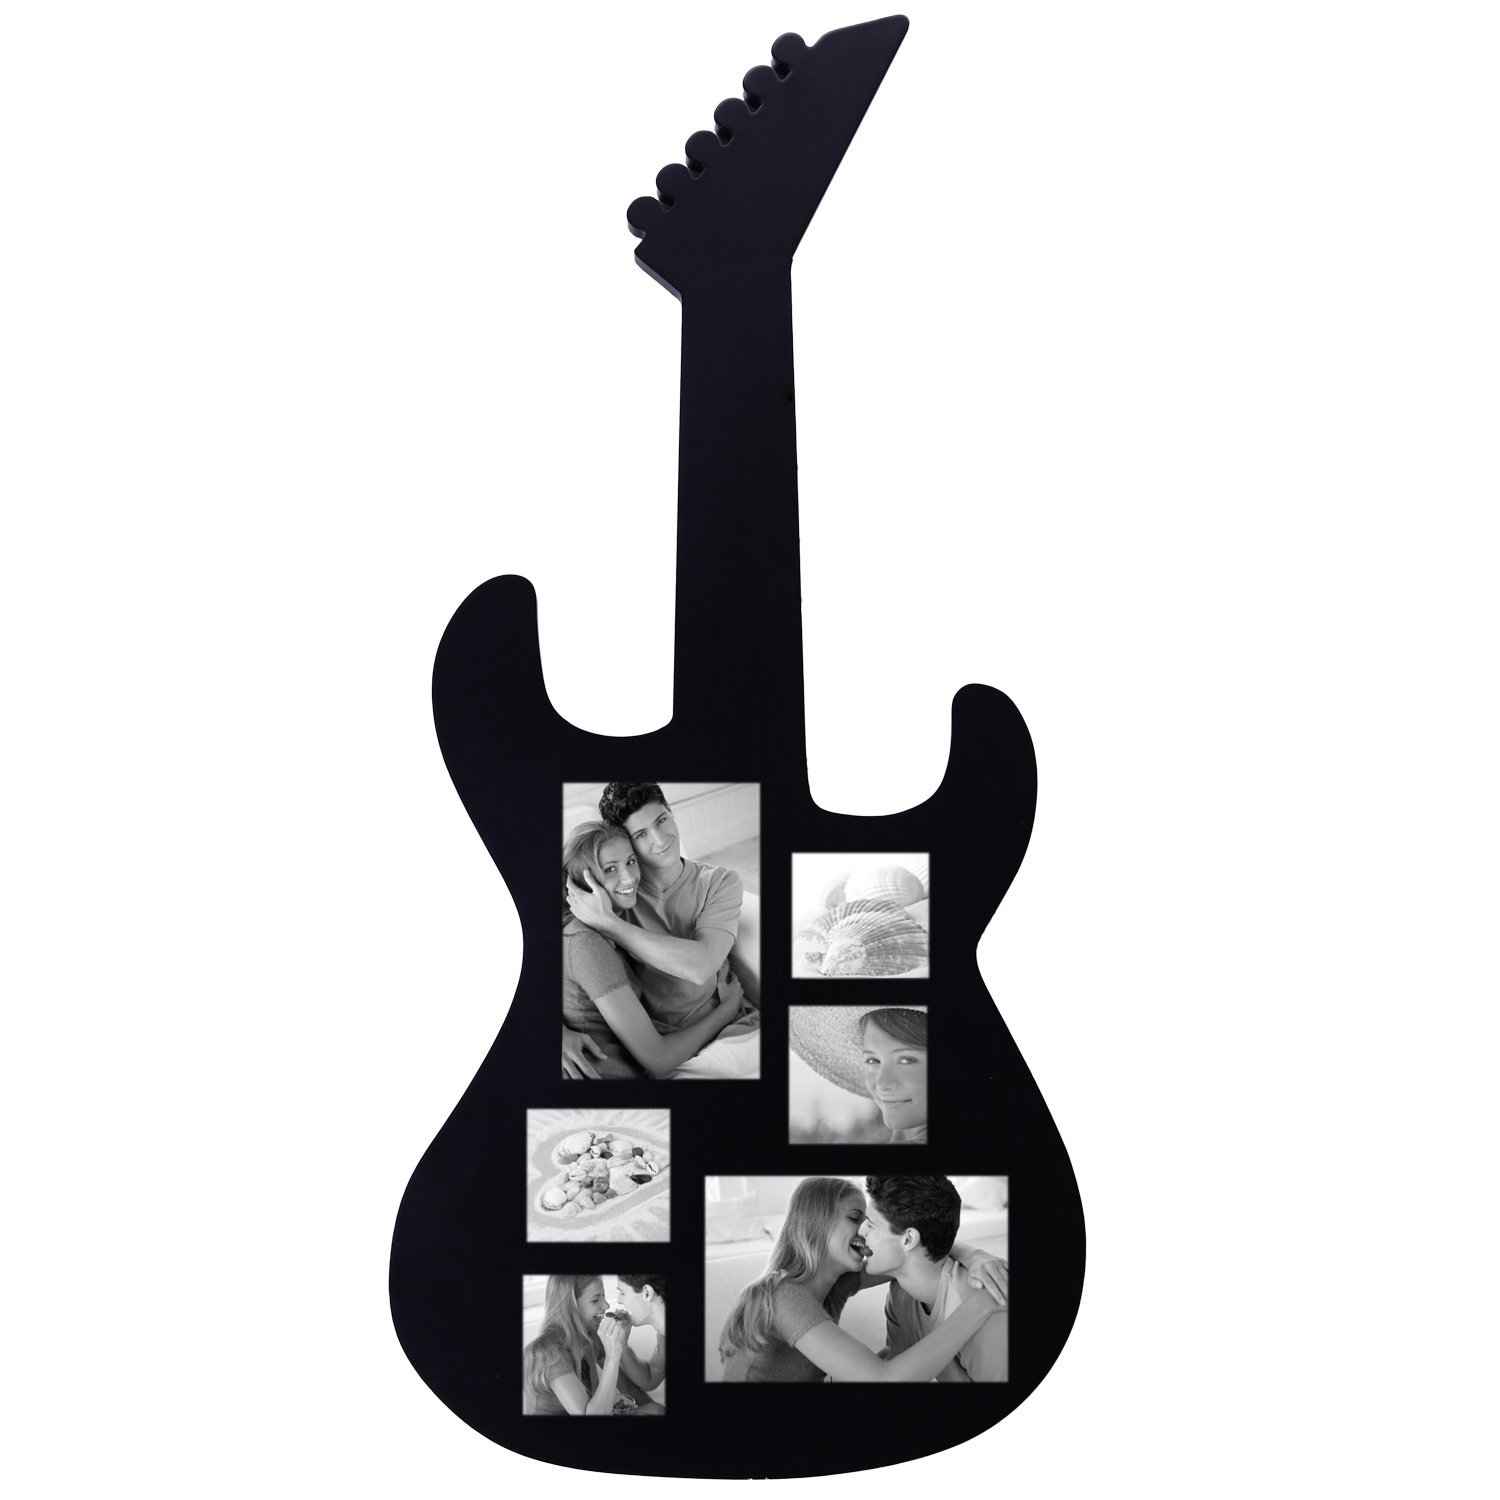 6 Openings Guitar Picture Collage Fame